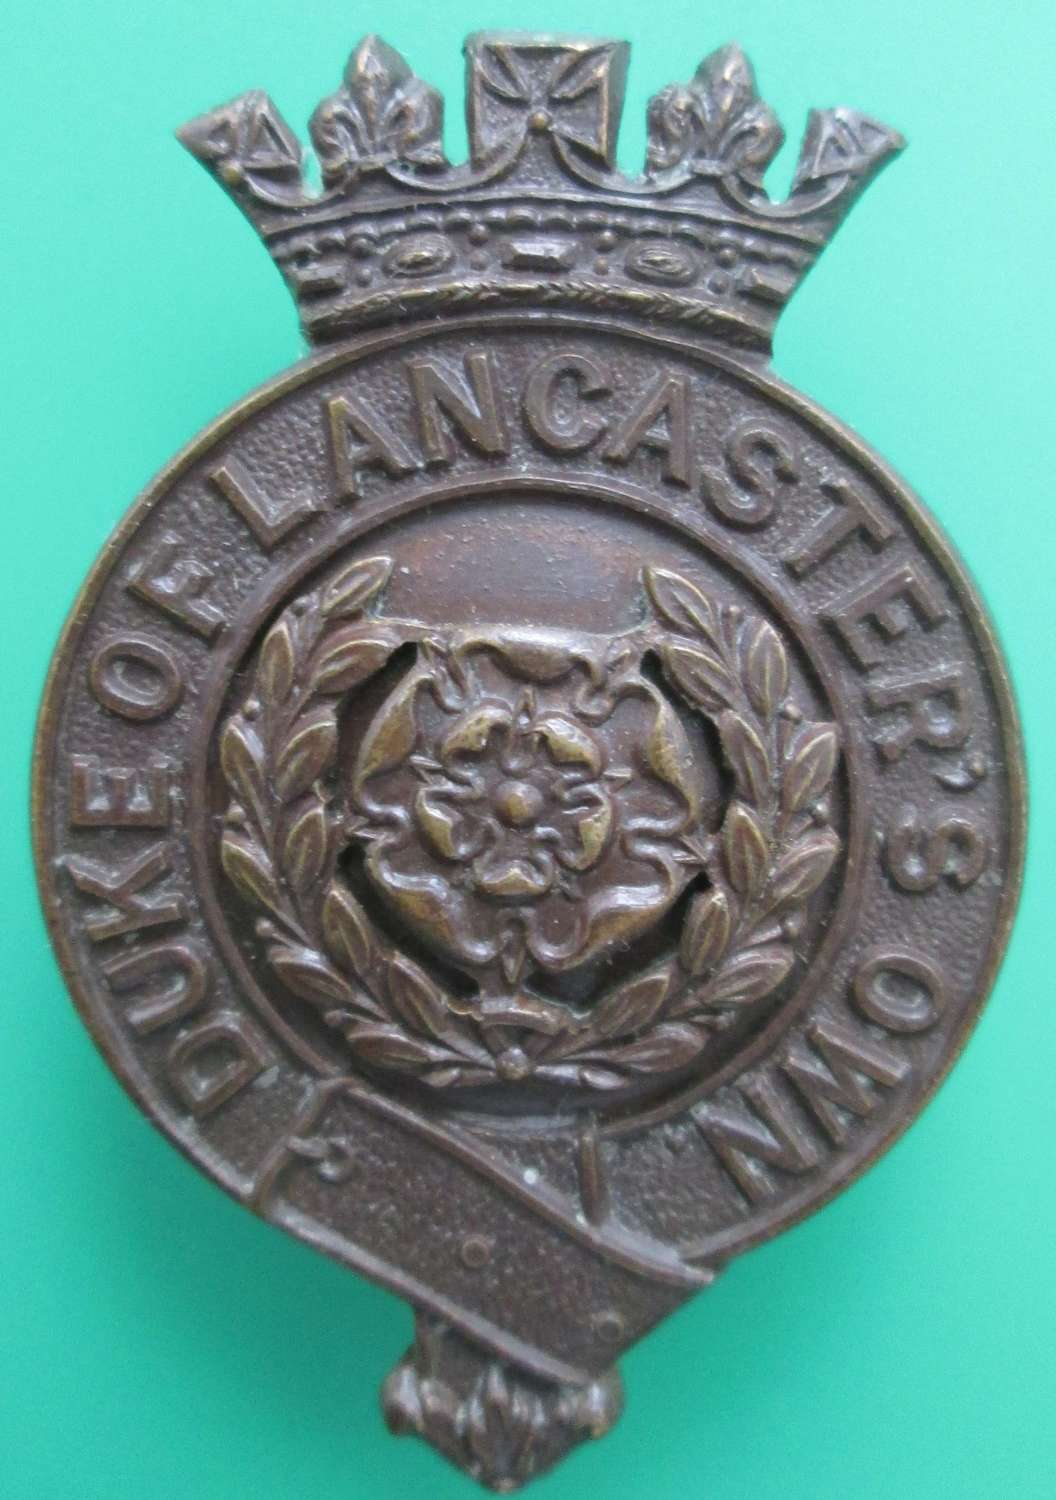 A DUKE OF LANCASTERS OWN OFFICERS BRONZE CAP BADGE